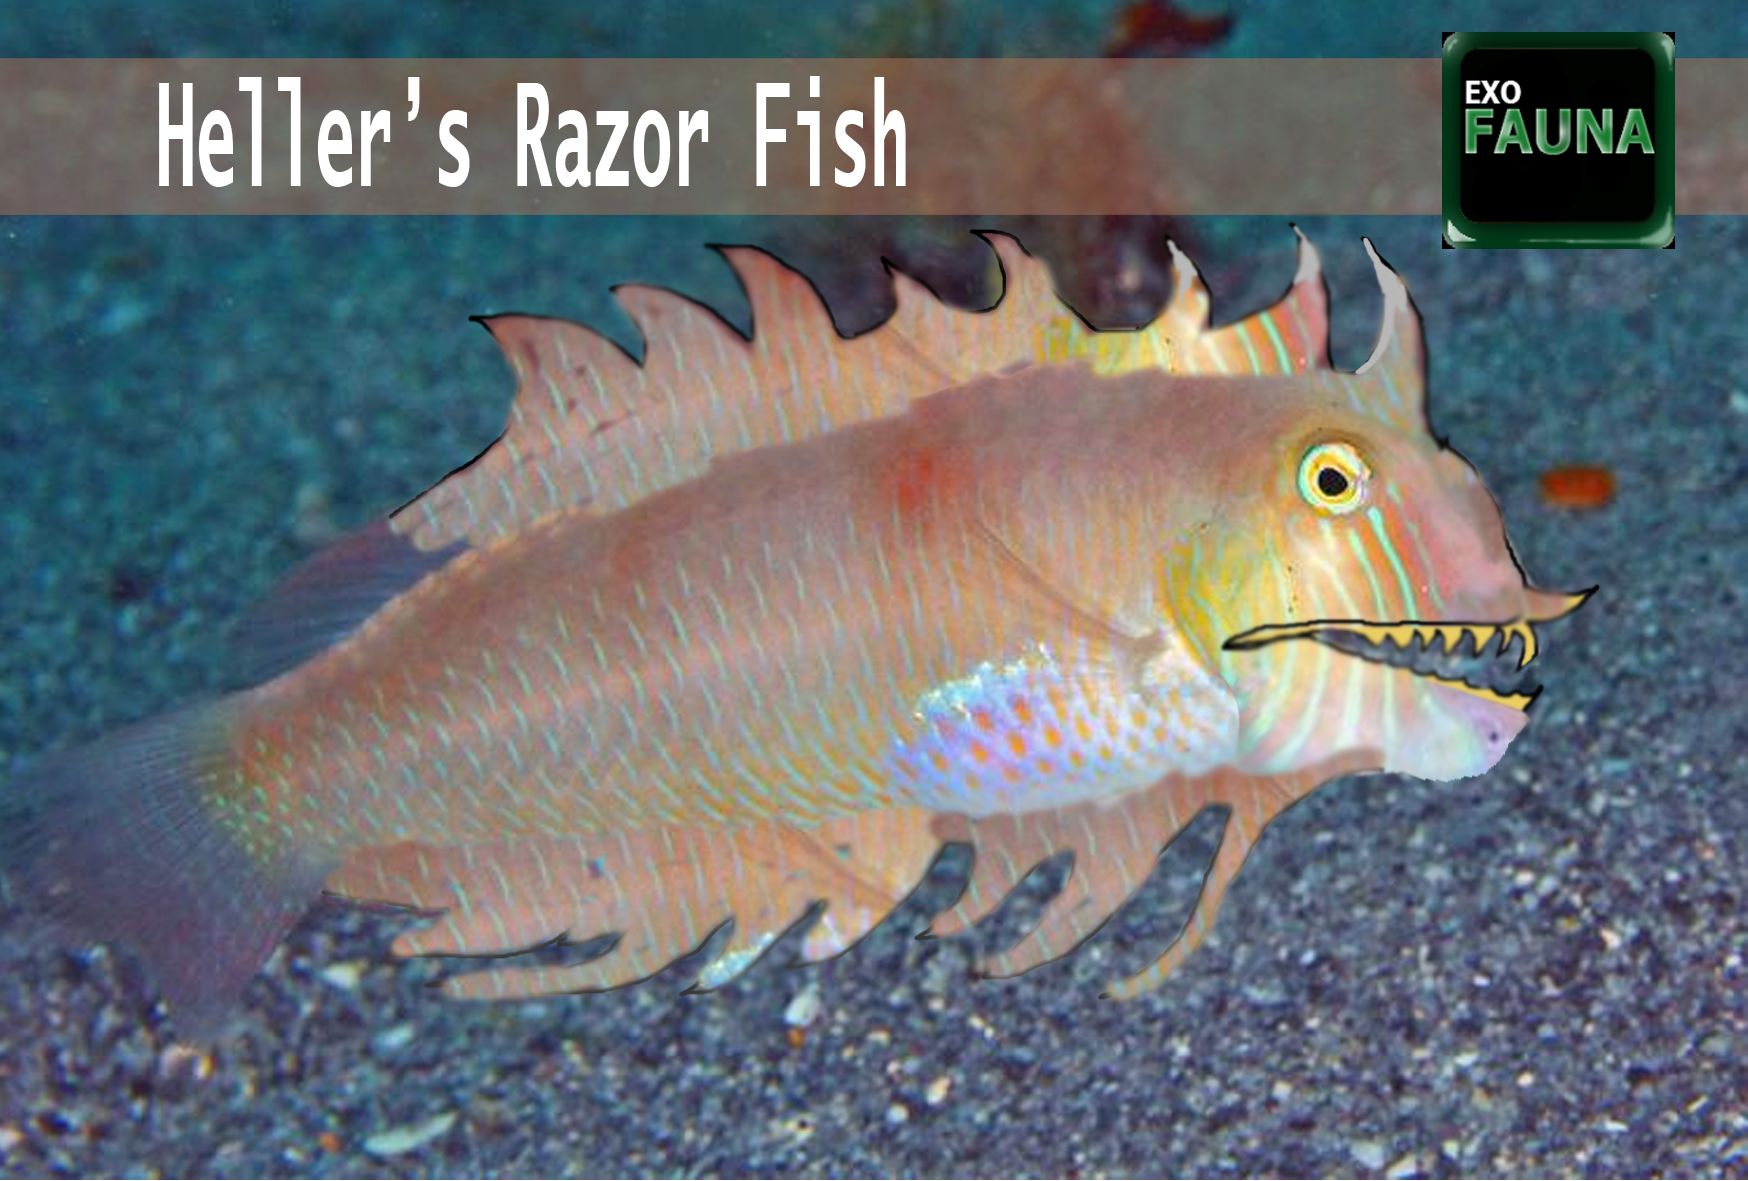 Razor fish | Galnet Wiki | Fandom powered by Wikia